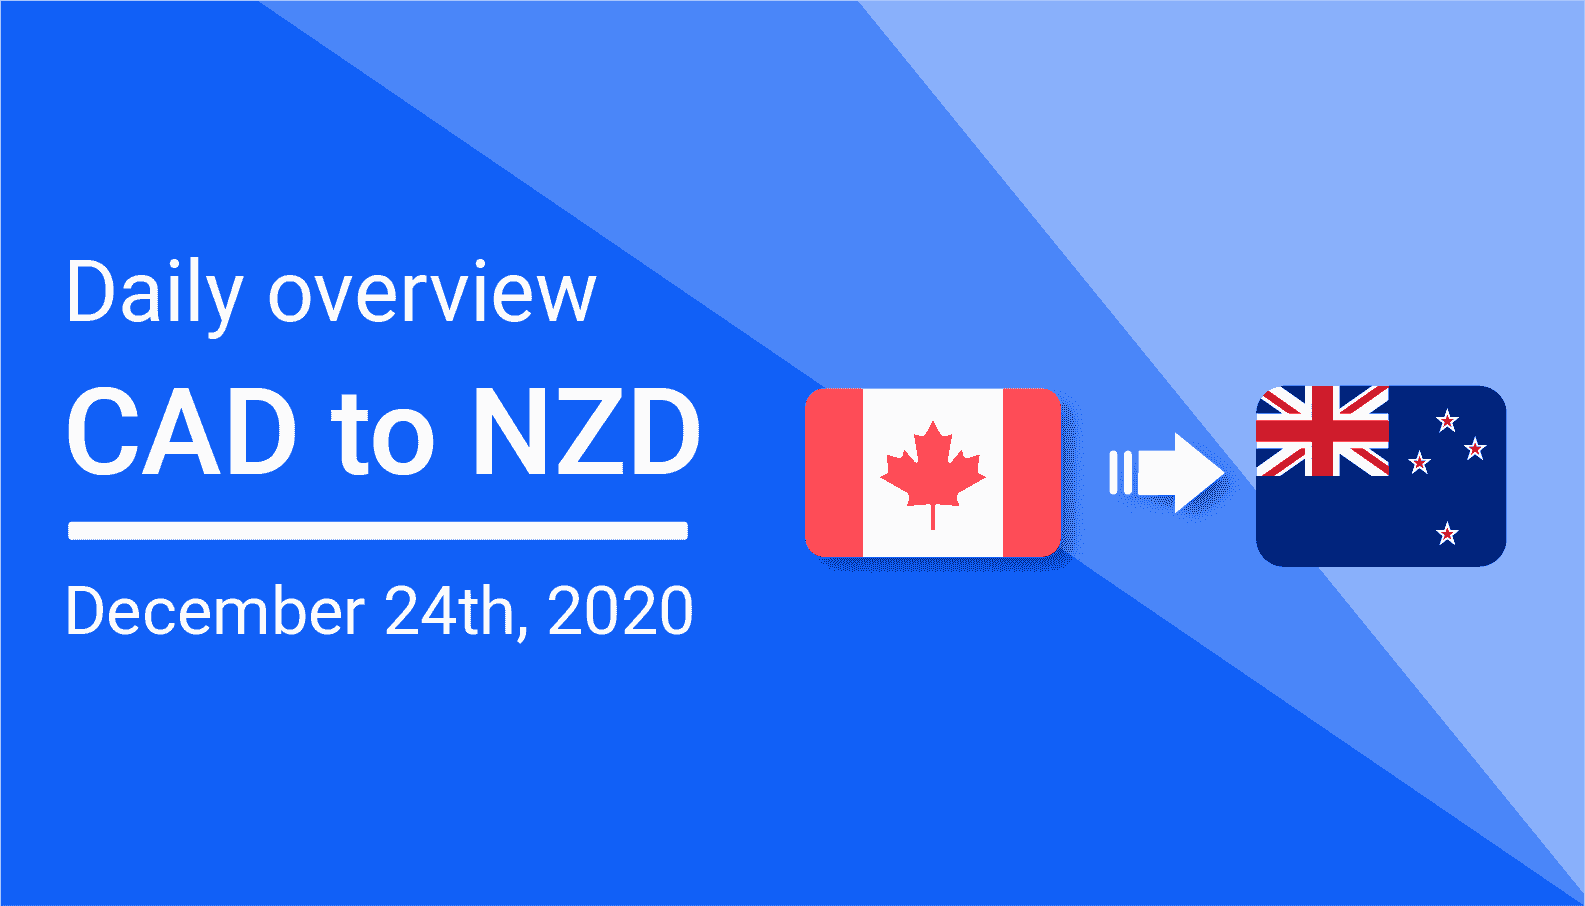 CAD to NZD Daily Overview: December 24th